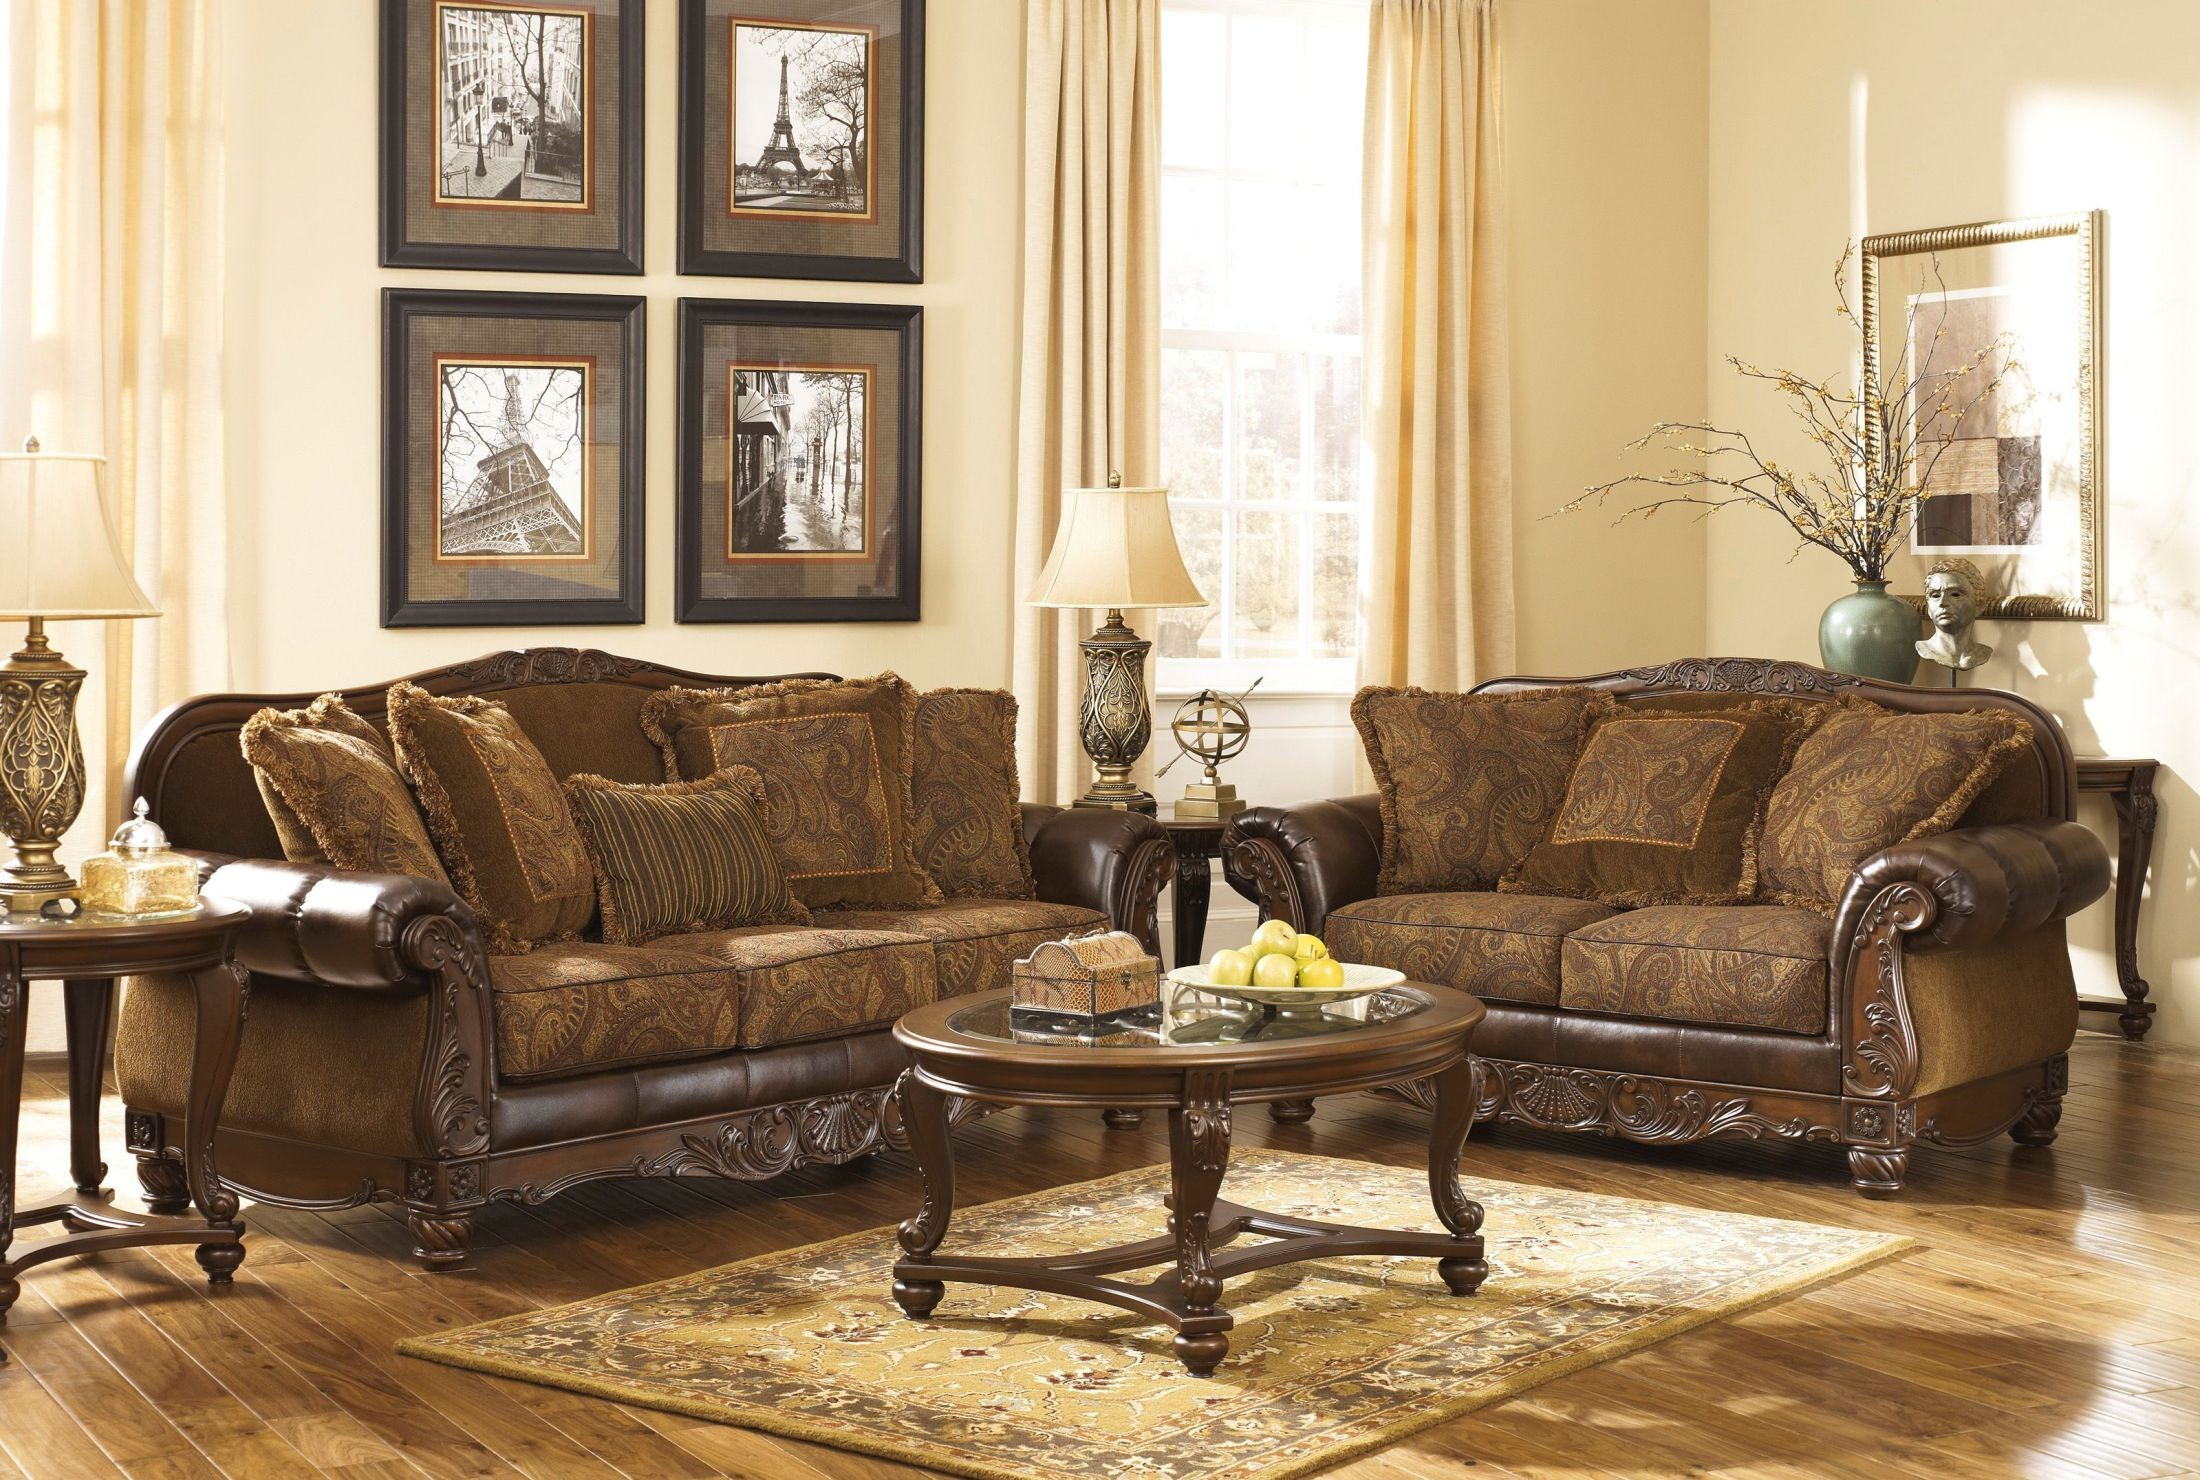 Fresco Durablend Antique Living Room Set From Ashley 63100 Coleman Furniture